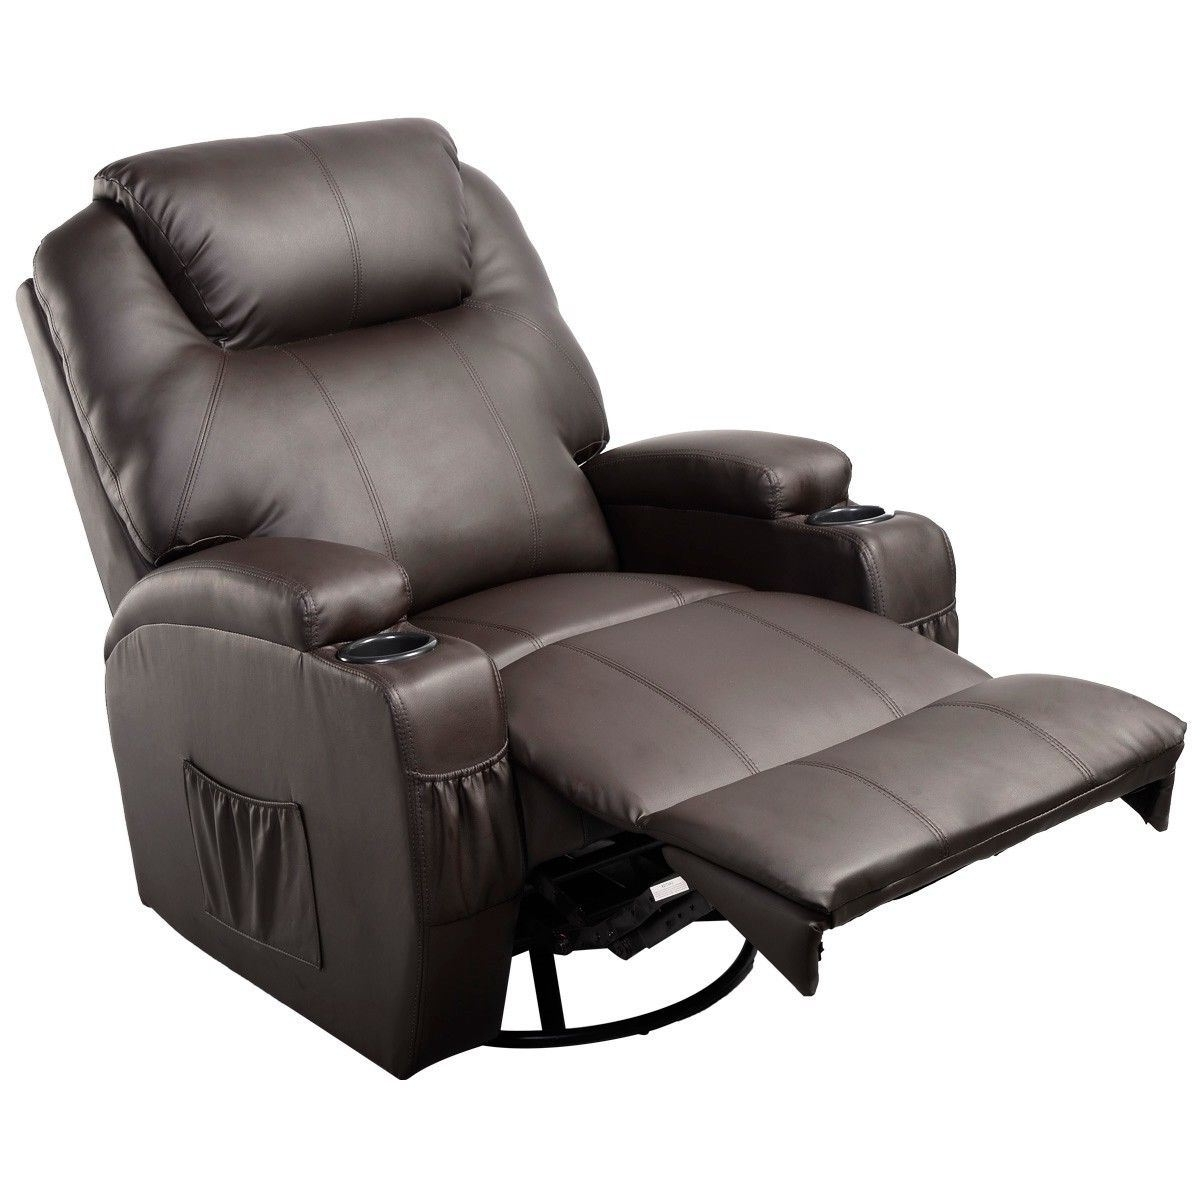 Ergonomic Heated Massage Recliner Sofa Chair (View 4 of 20)